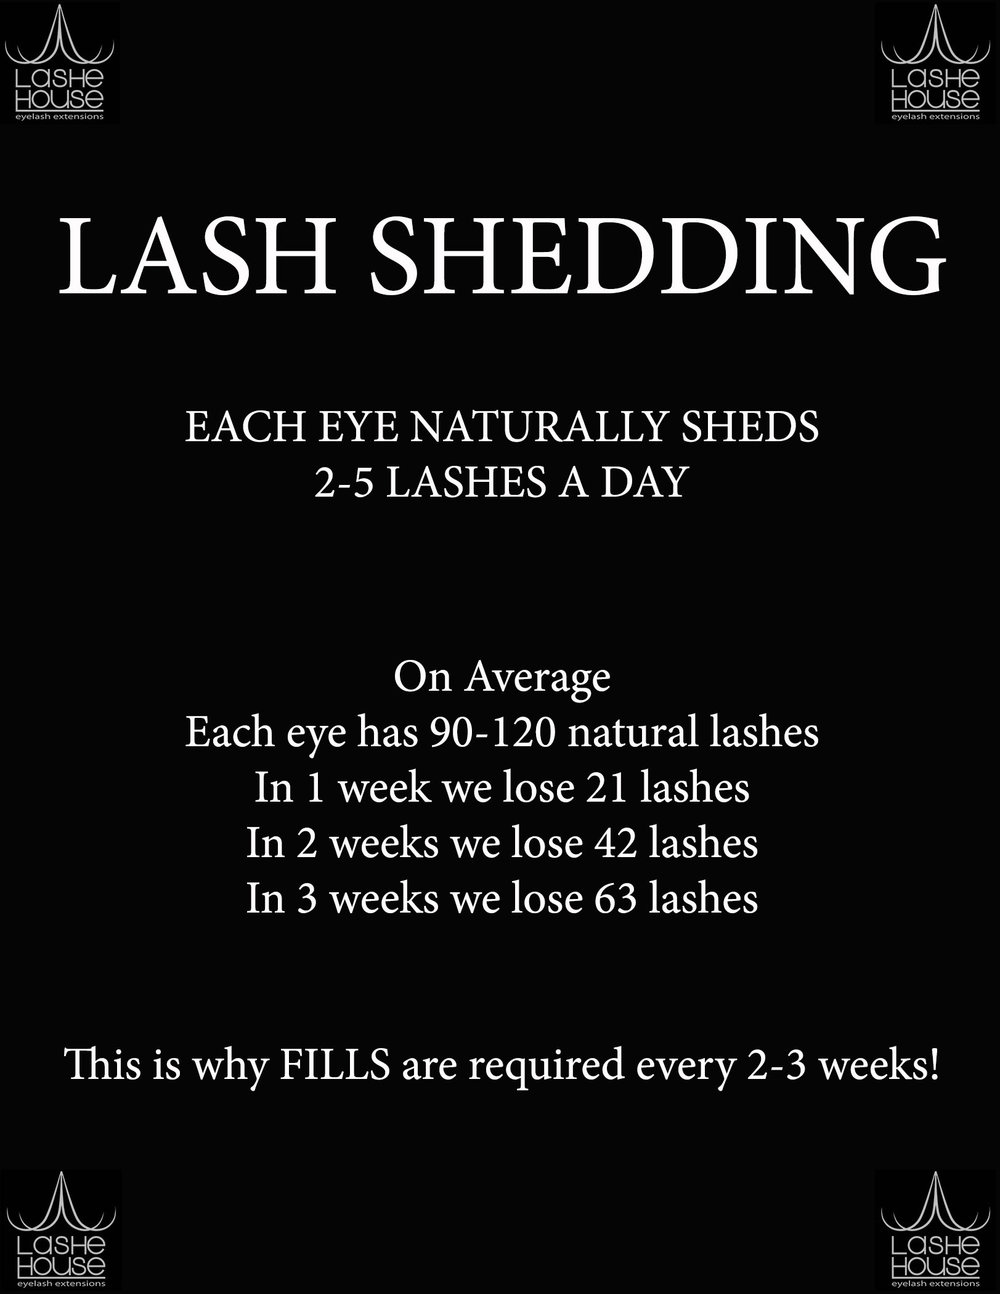 lash shedding.jpg